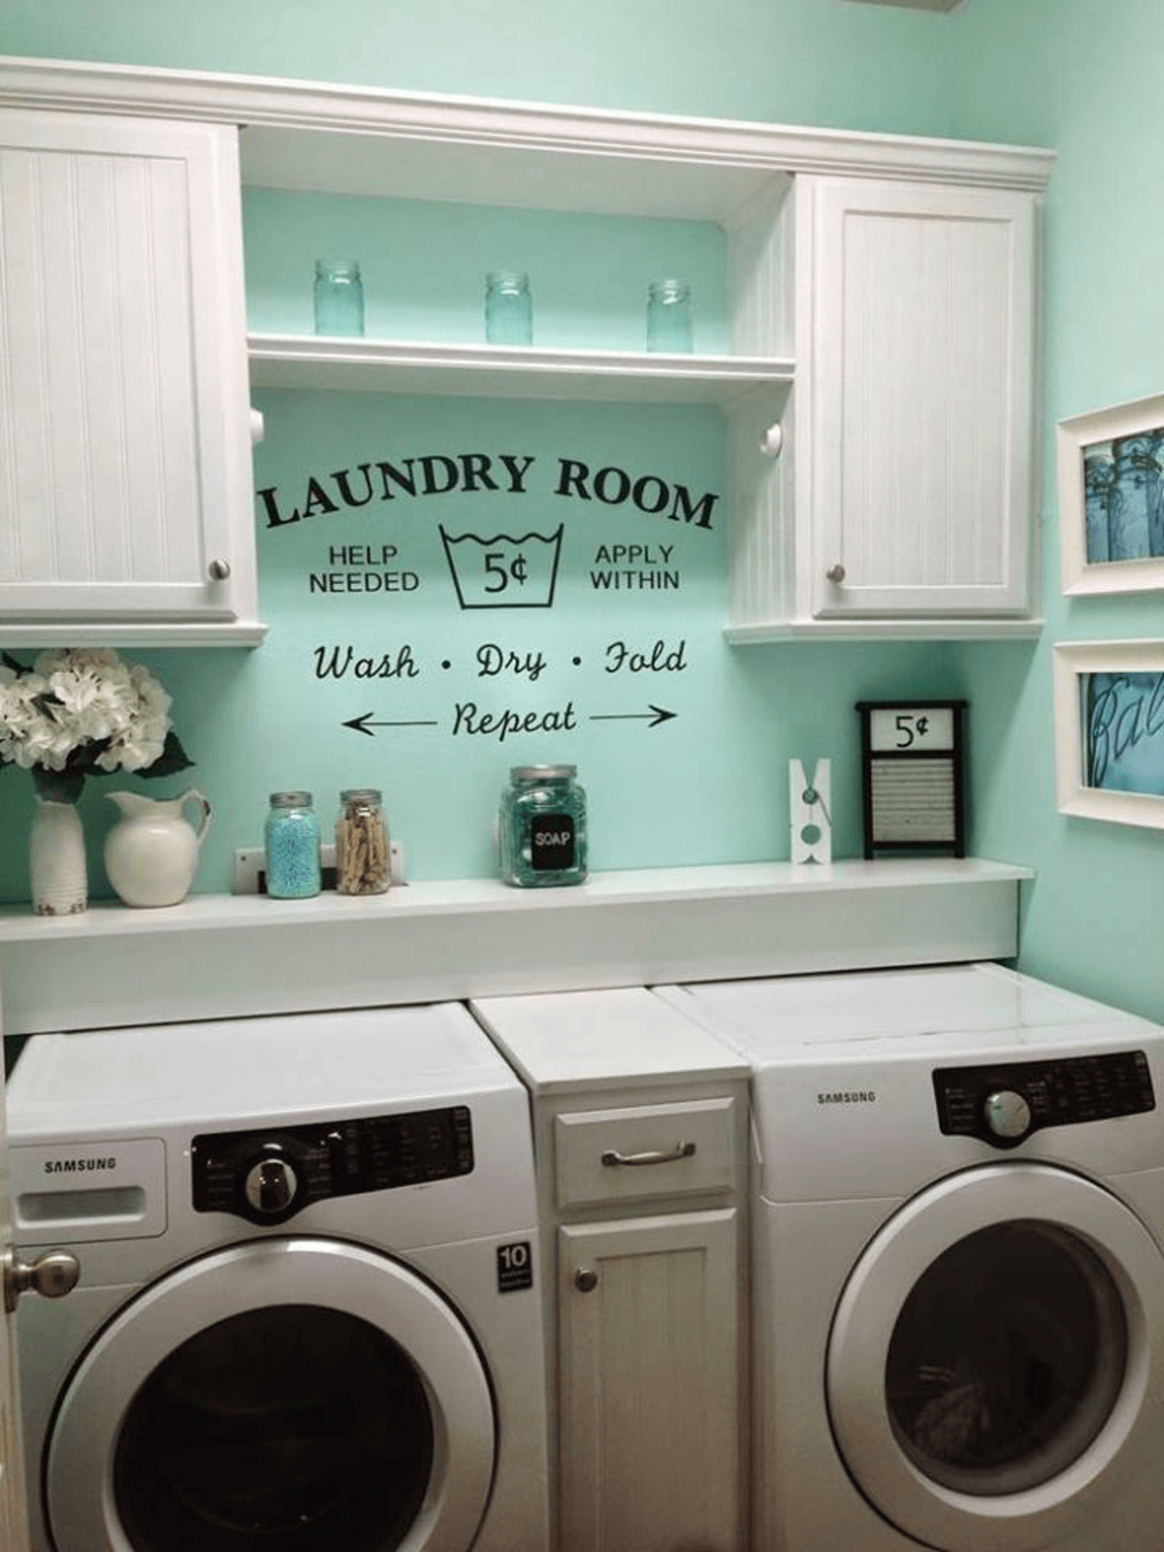 12 Basement Laundry Room ideas for Small Space (Makeovers) - laundry room ideas for basement